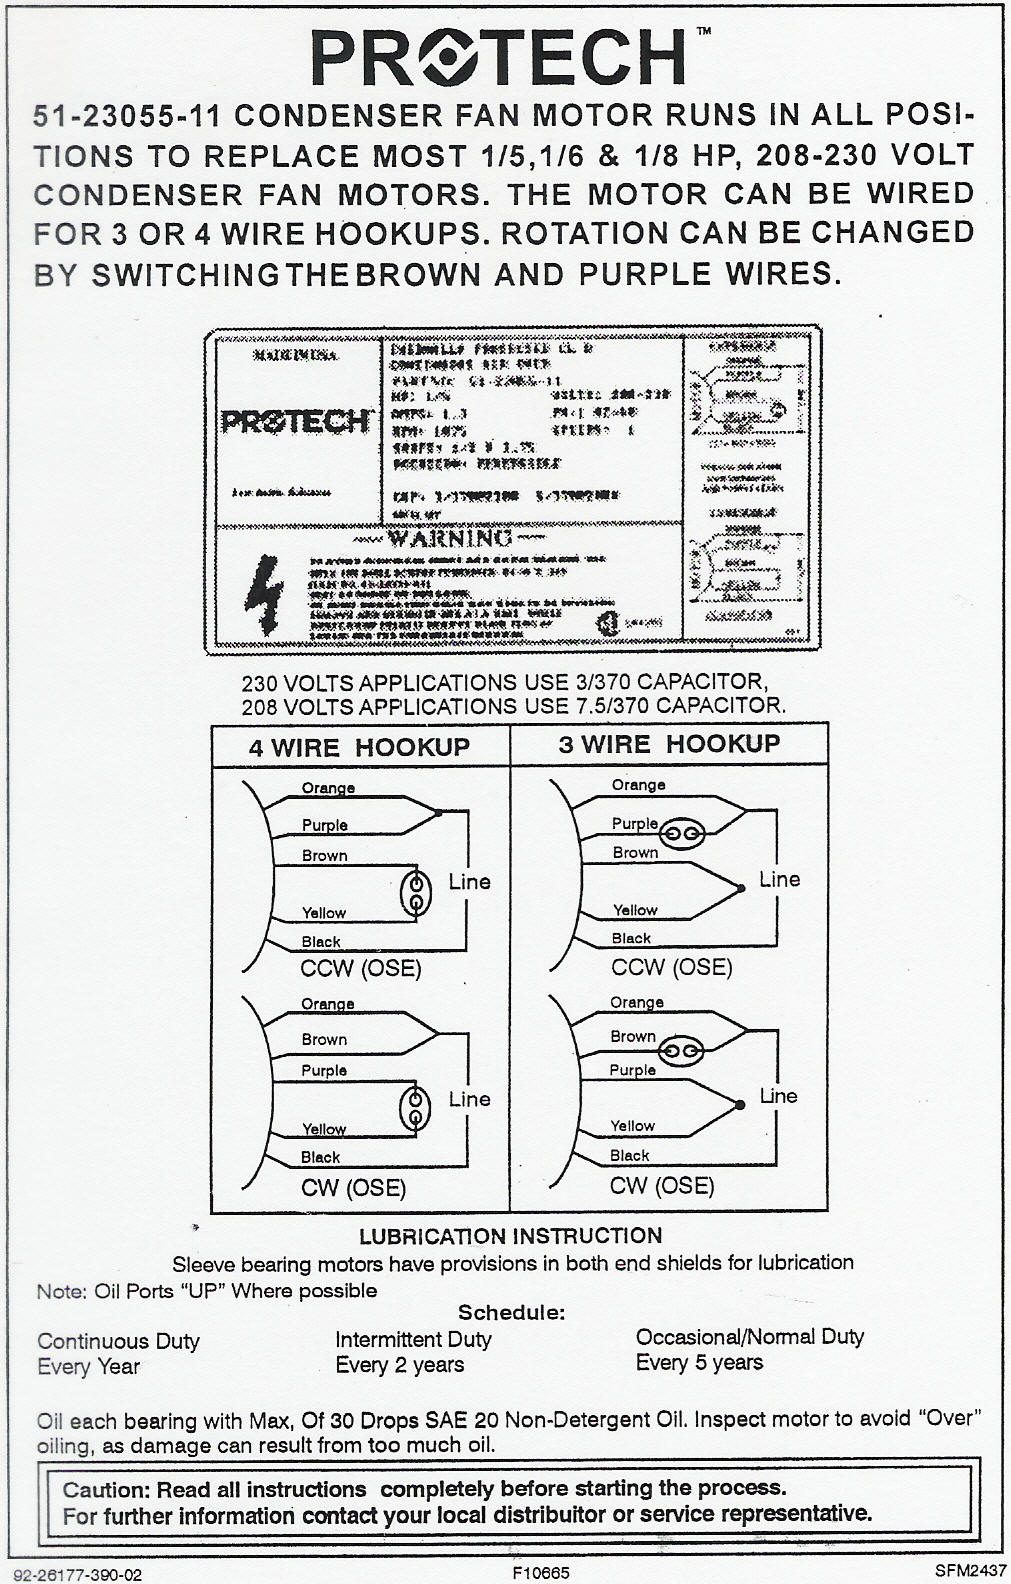 51 23055 11 wiring diagram rheem ruud condenser fan motor 51 23055 11 wiring diagram rheem ac unit wiring diagram at gsmportal.co